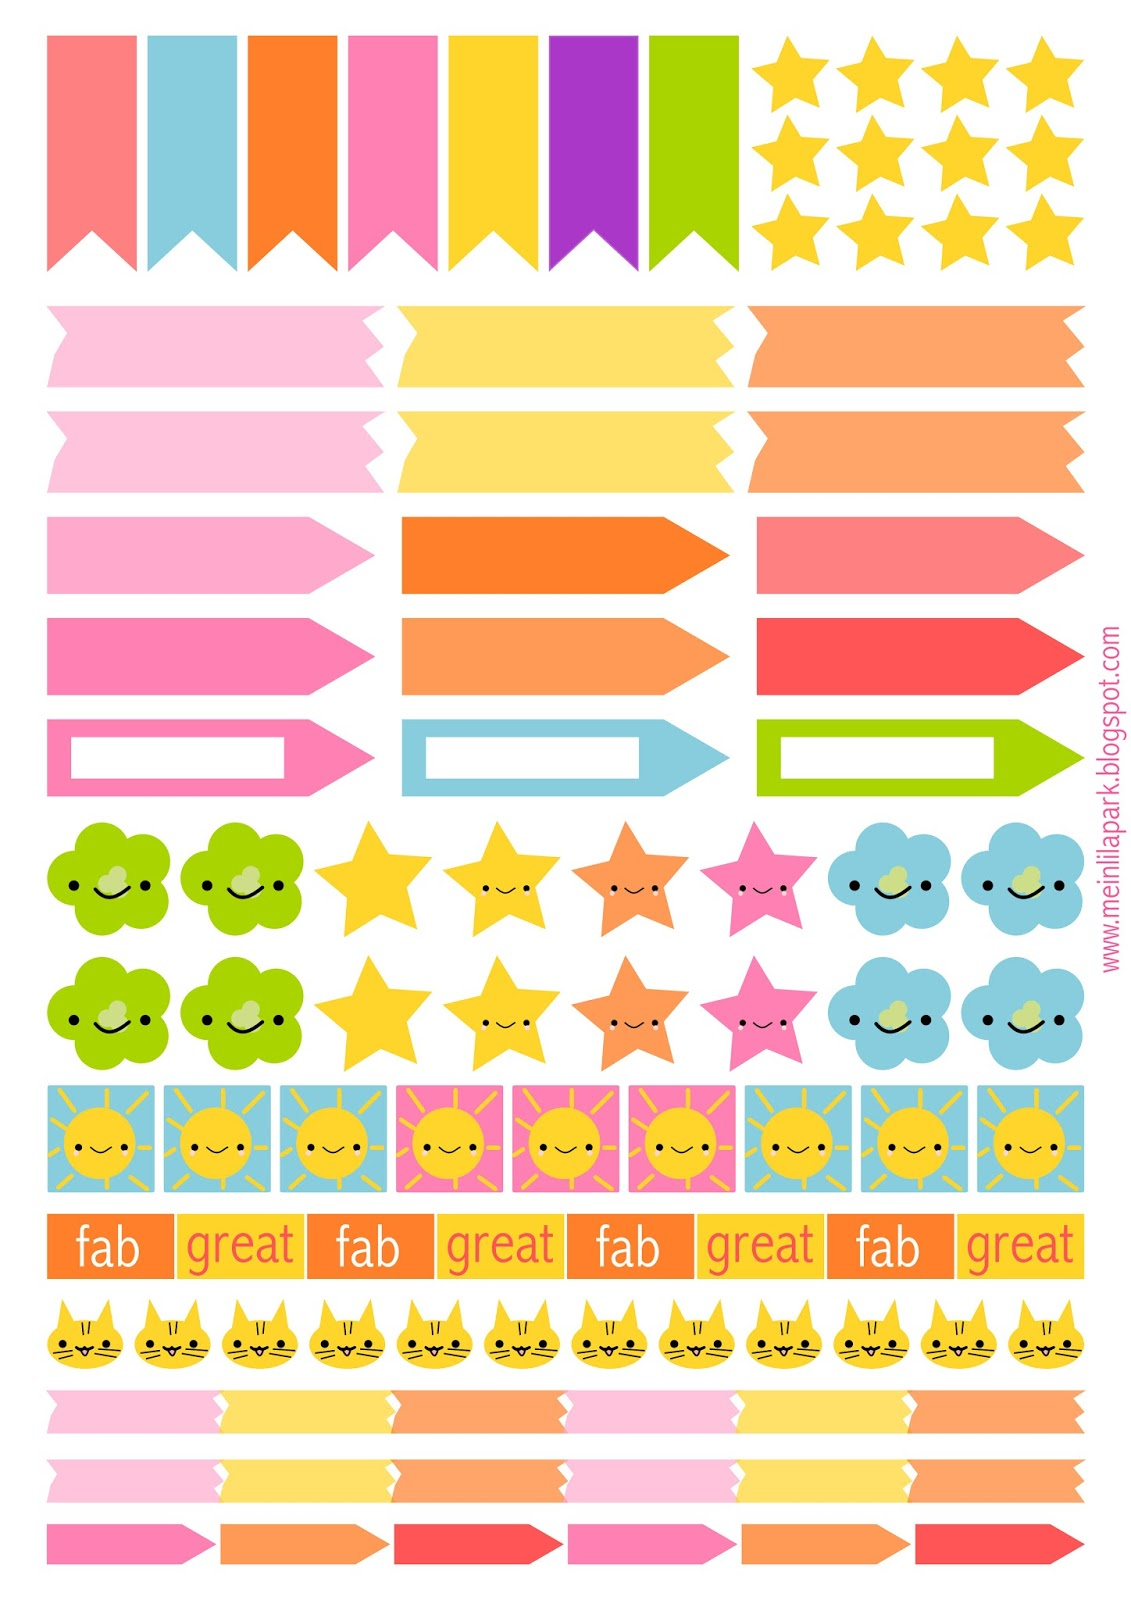 Old Fashioned image in printable planner stickers